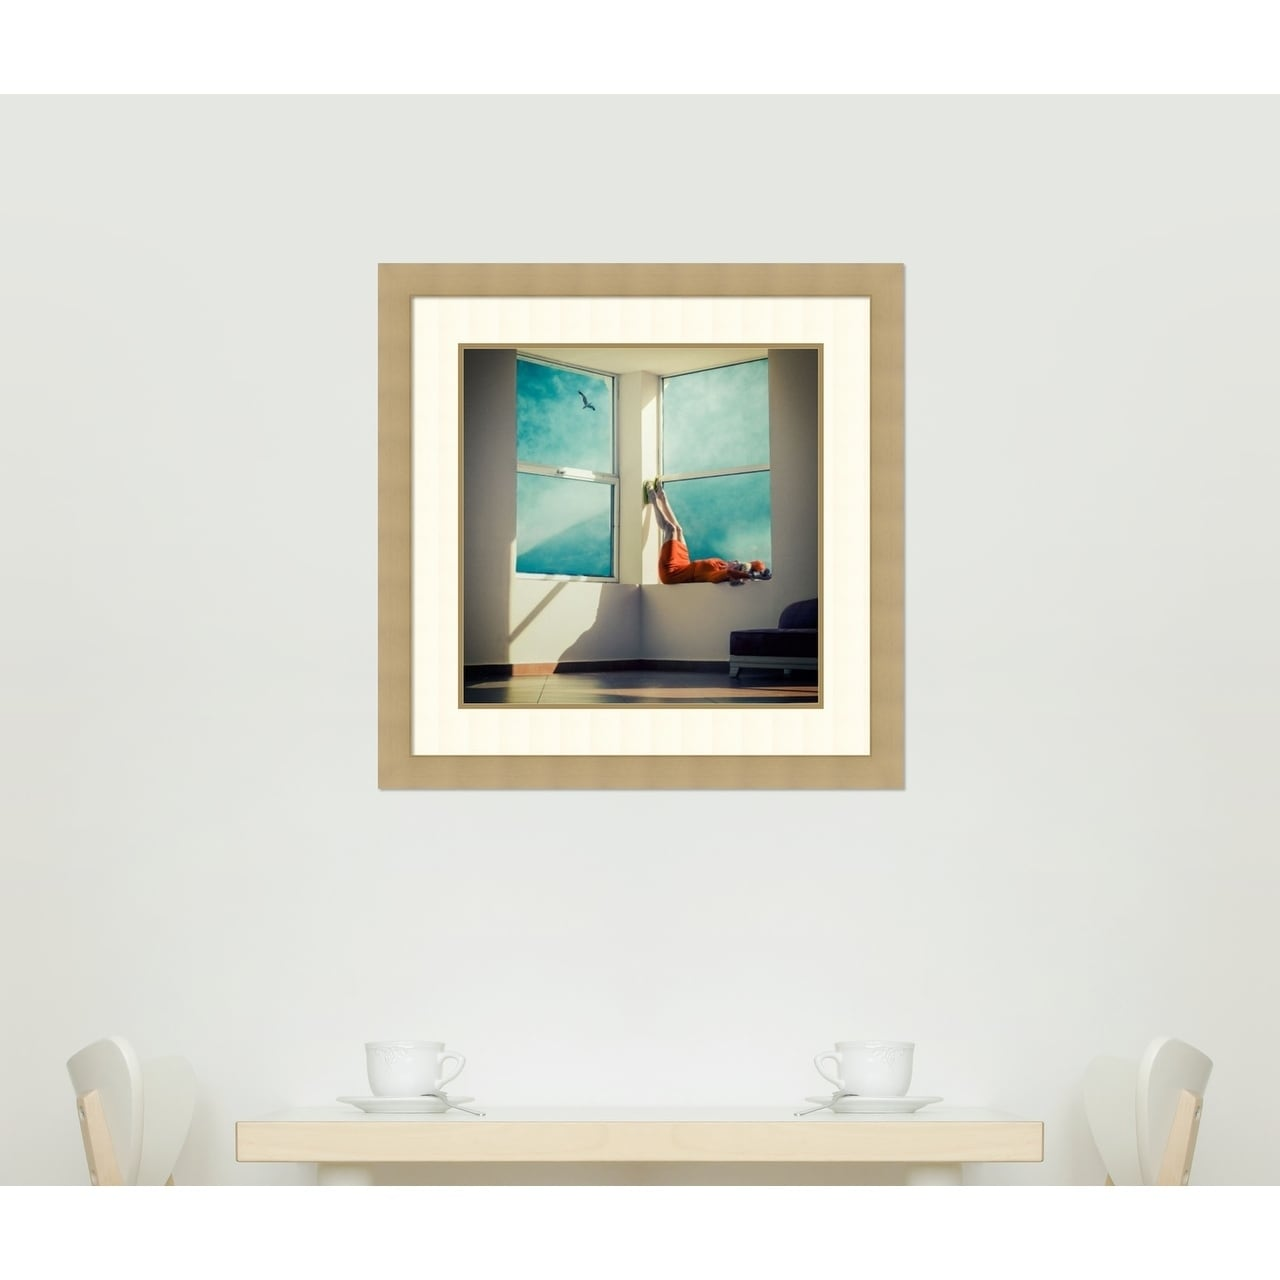 Framed Art Print \'Room With A View\' by Ambra 29 x 29-inch - Free ...